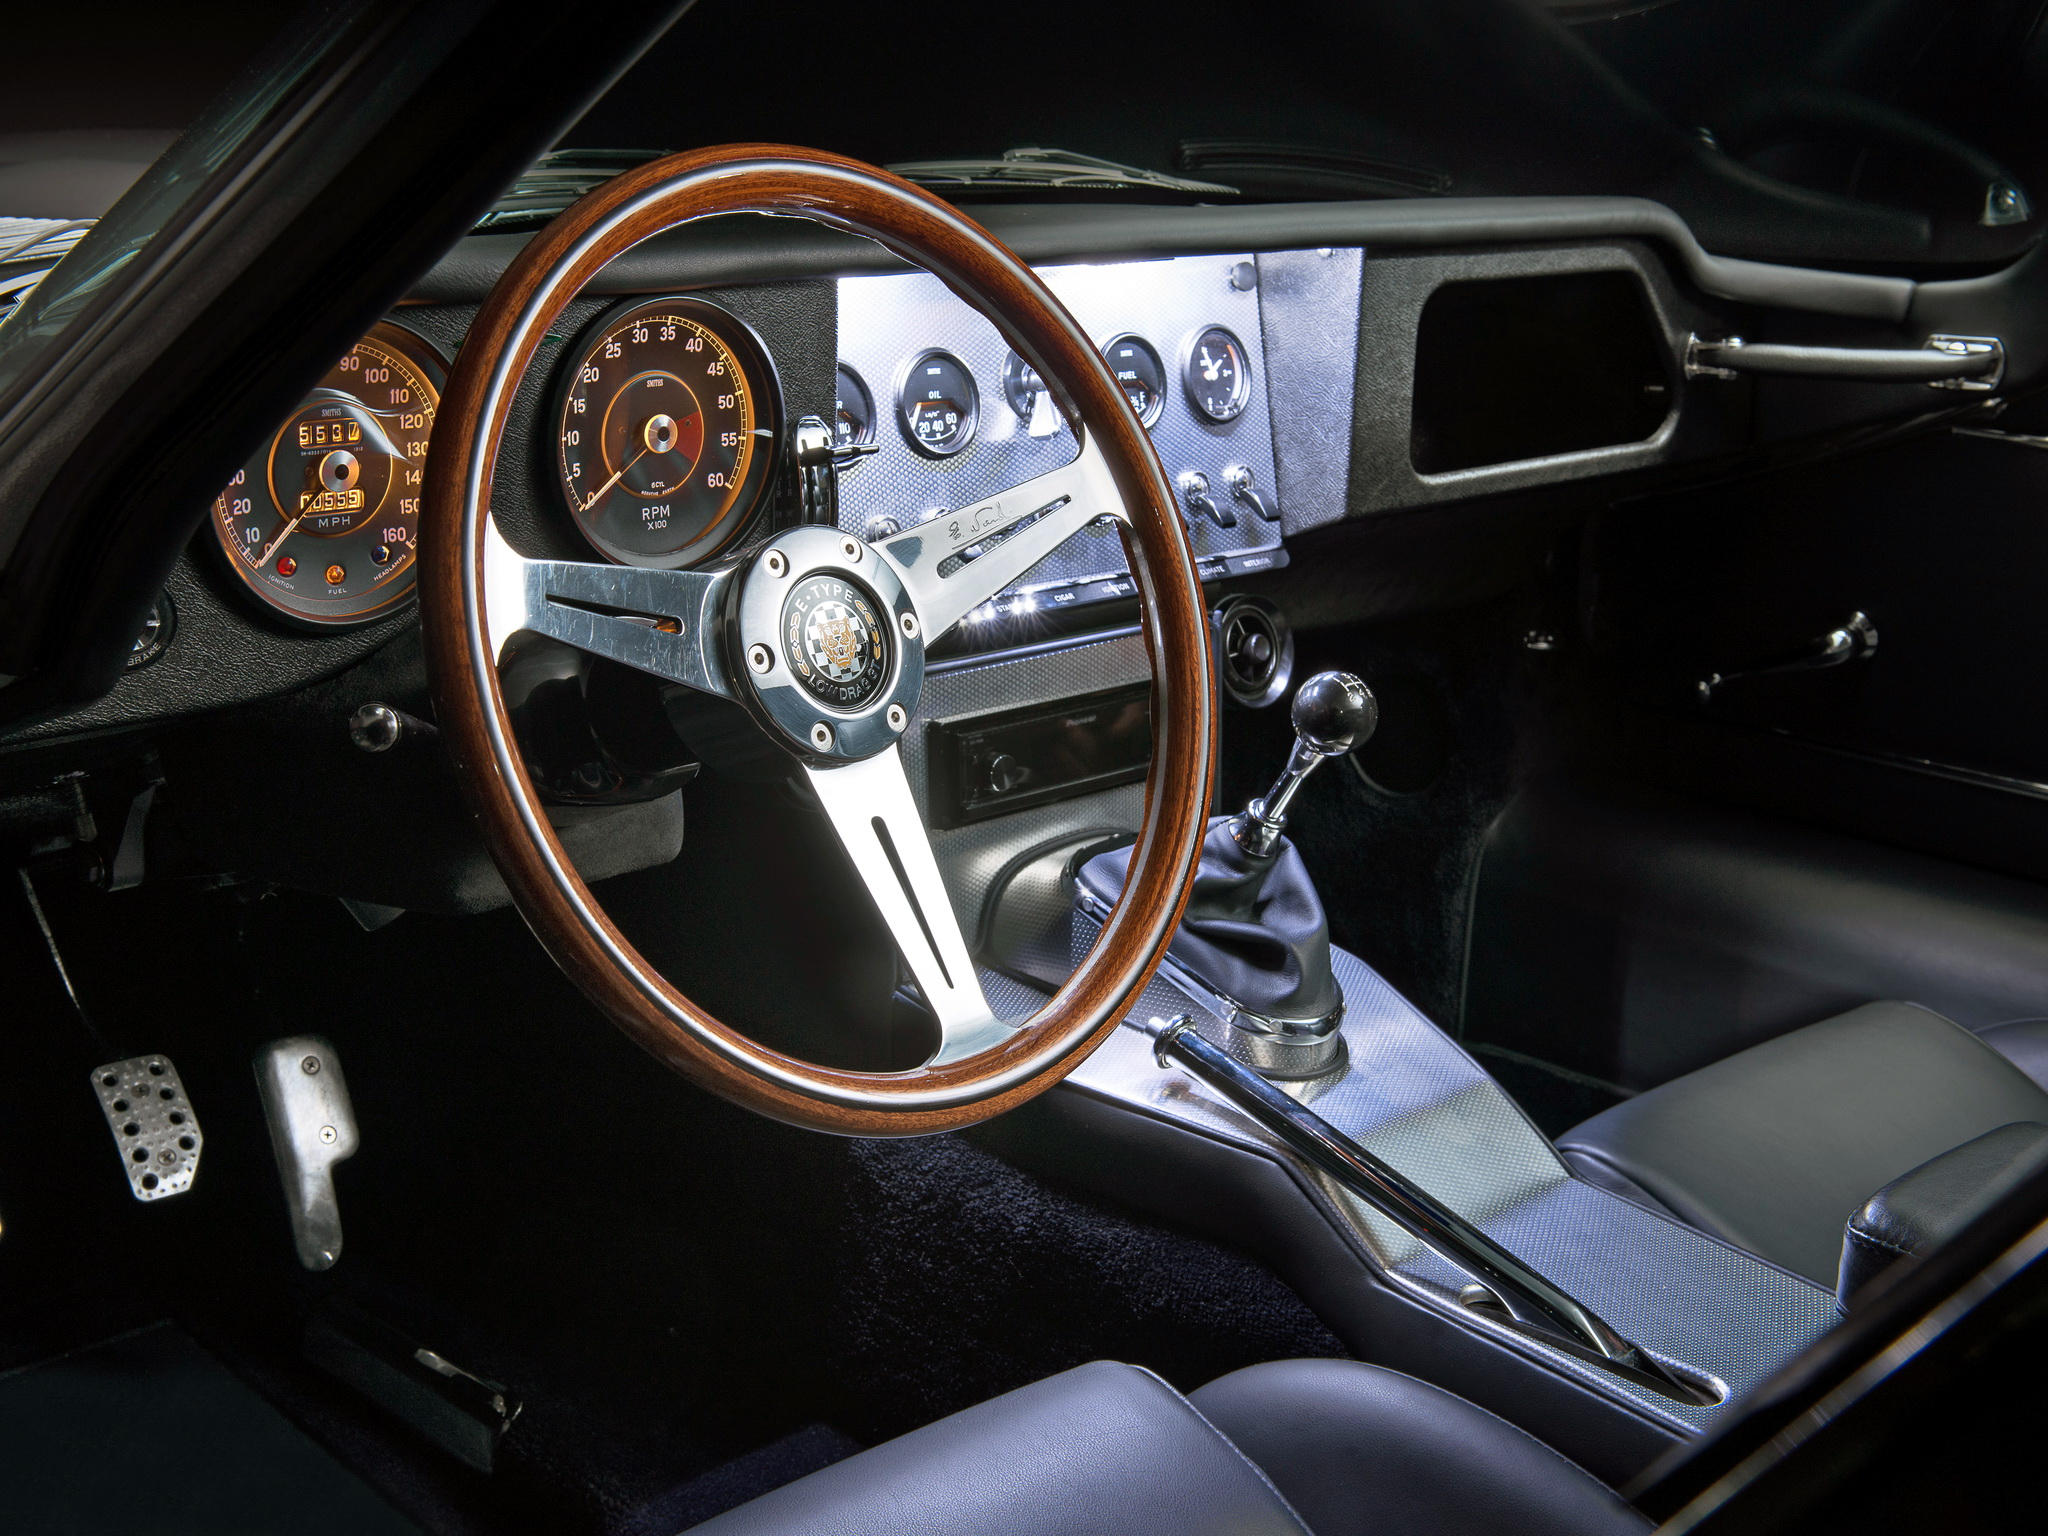 The place to be, the cockpit of the Eagle Low Drag GT. (Picture courtesy of wallpaperup.com)